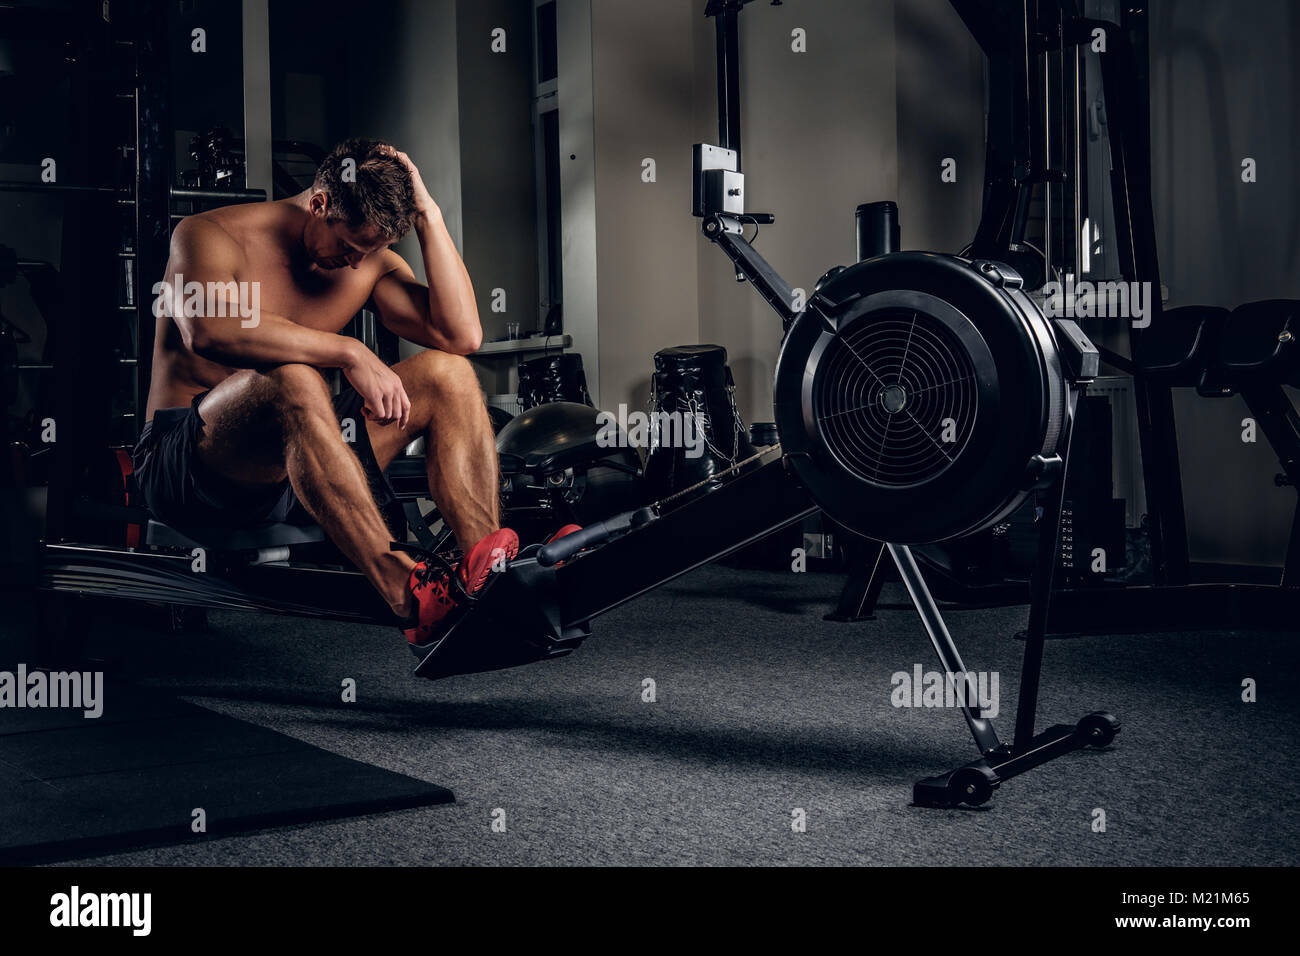 Tired sporty male after workouts on power exercise machine. - Stock Image